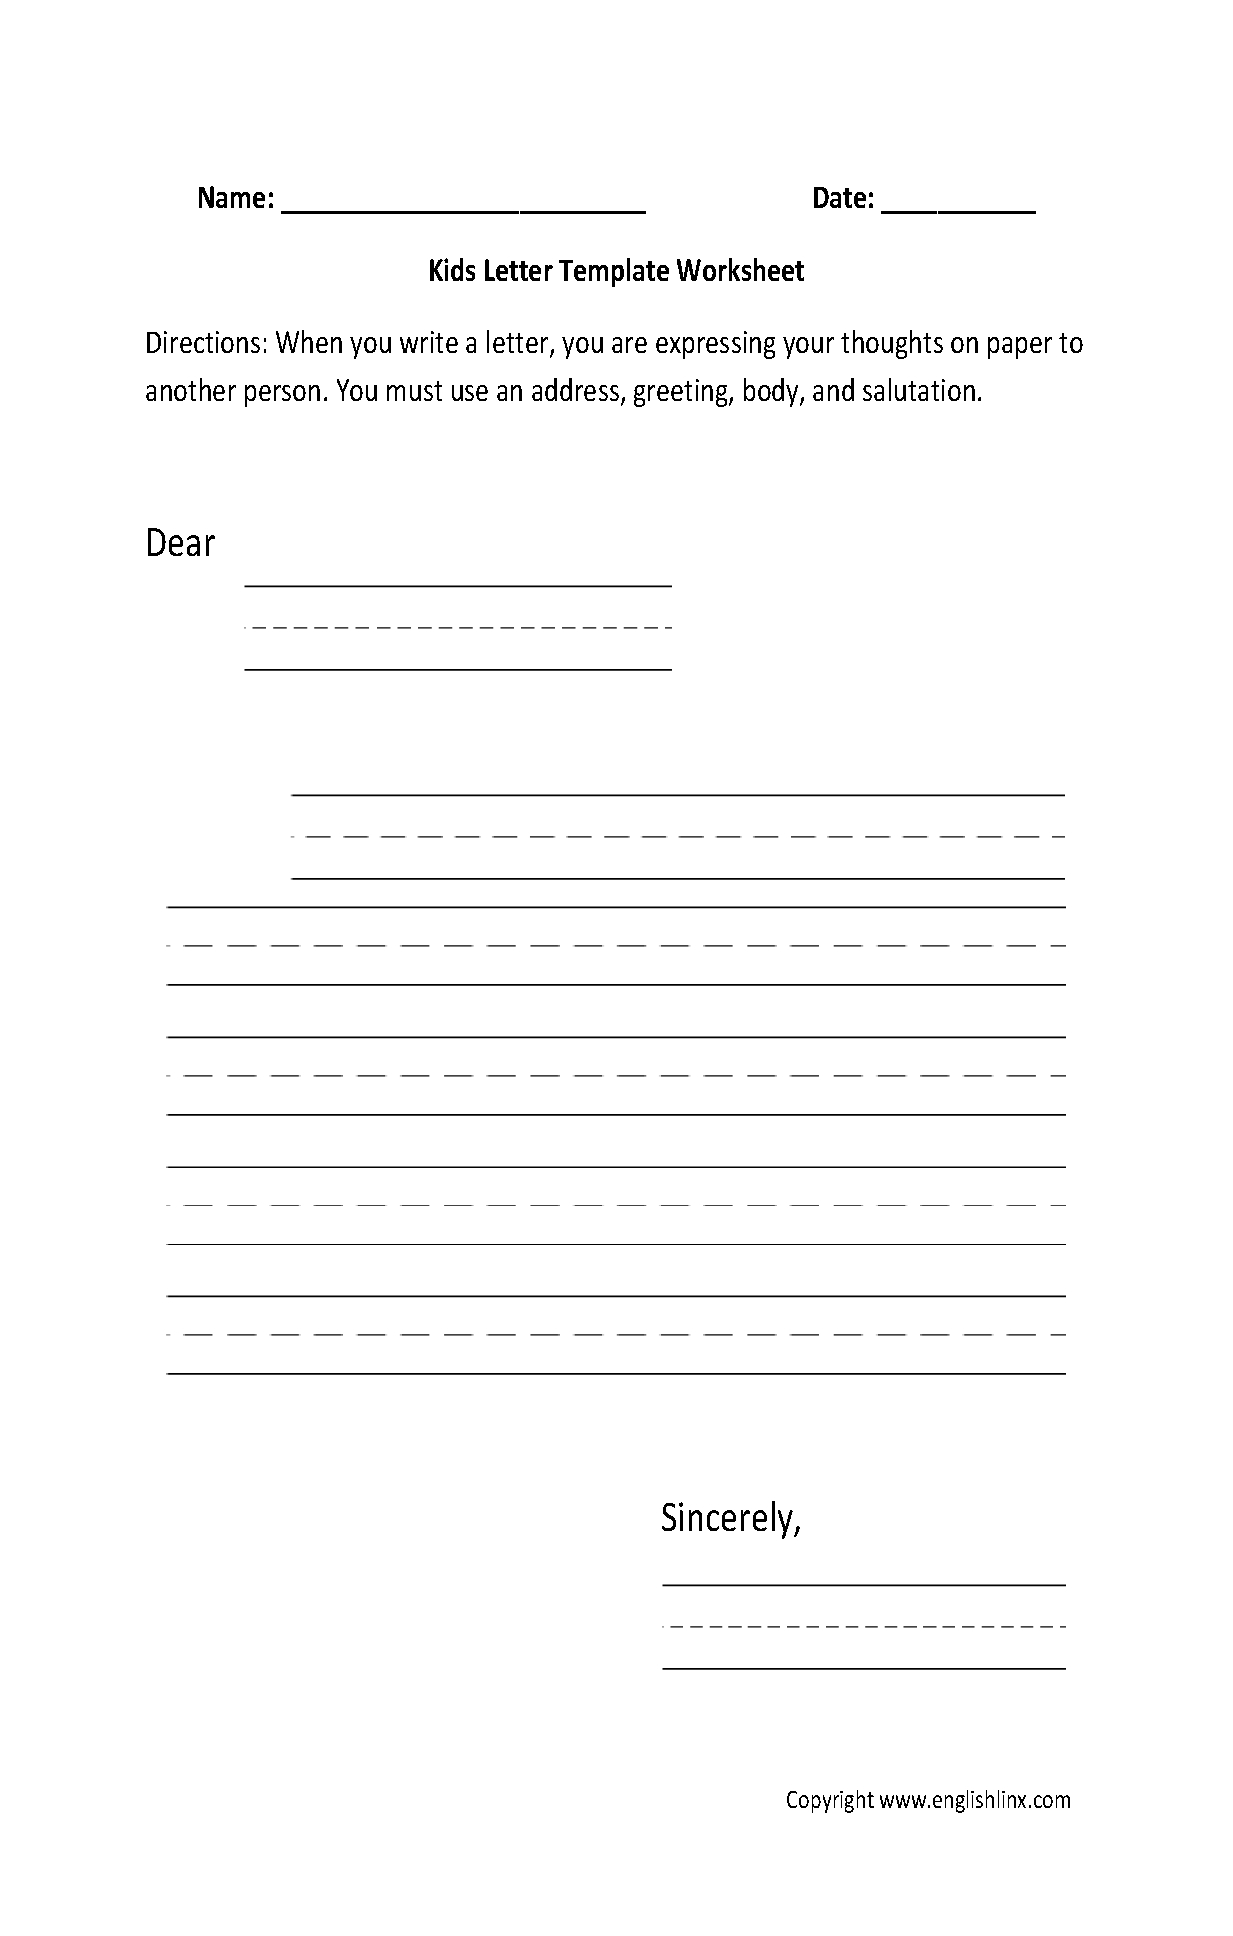 Writing Worksheets | Letter Writing Worksheets | Free Printable Letter Writing Worksheets